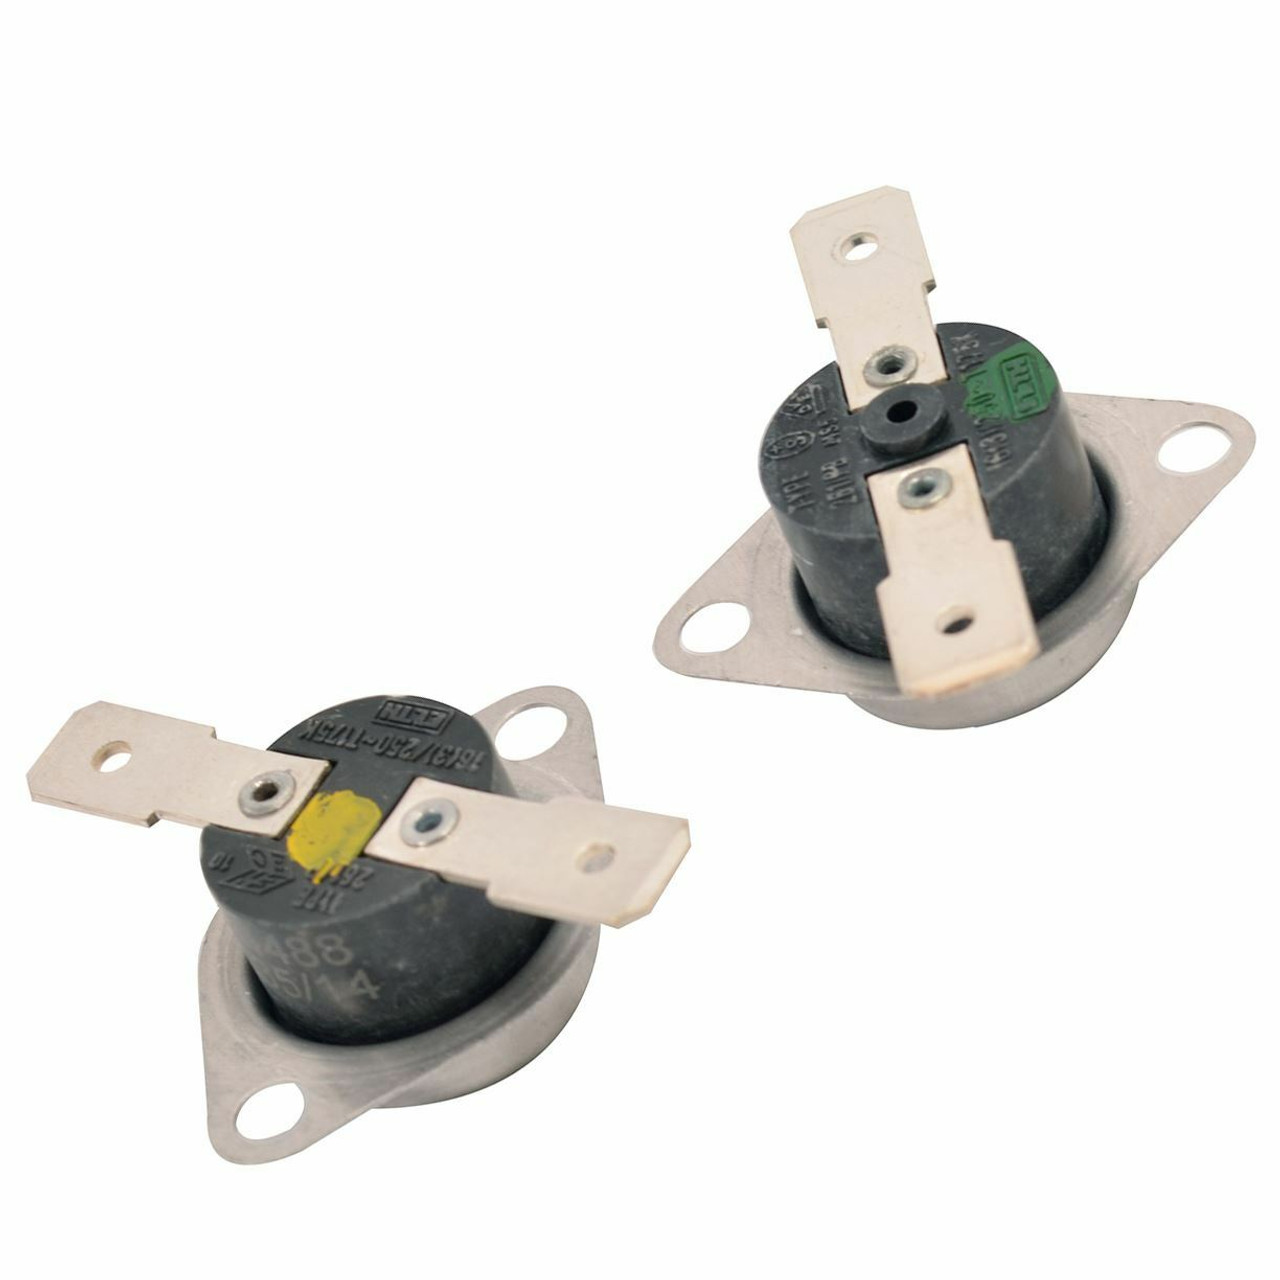 C00095566 Hotpoint / Indesit Thermostats